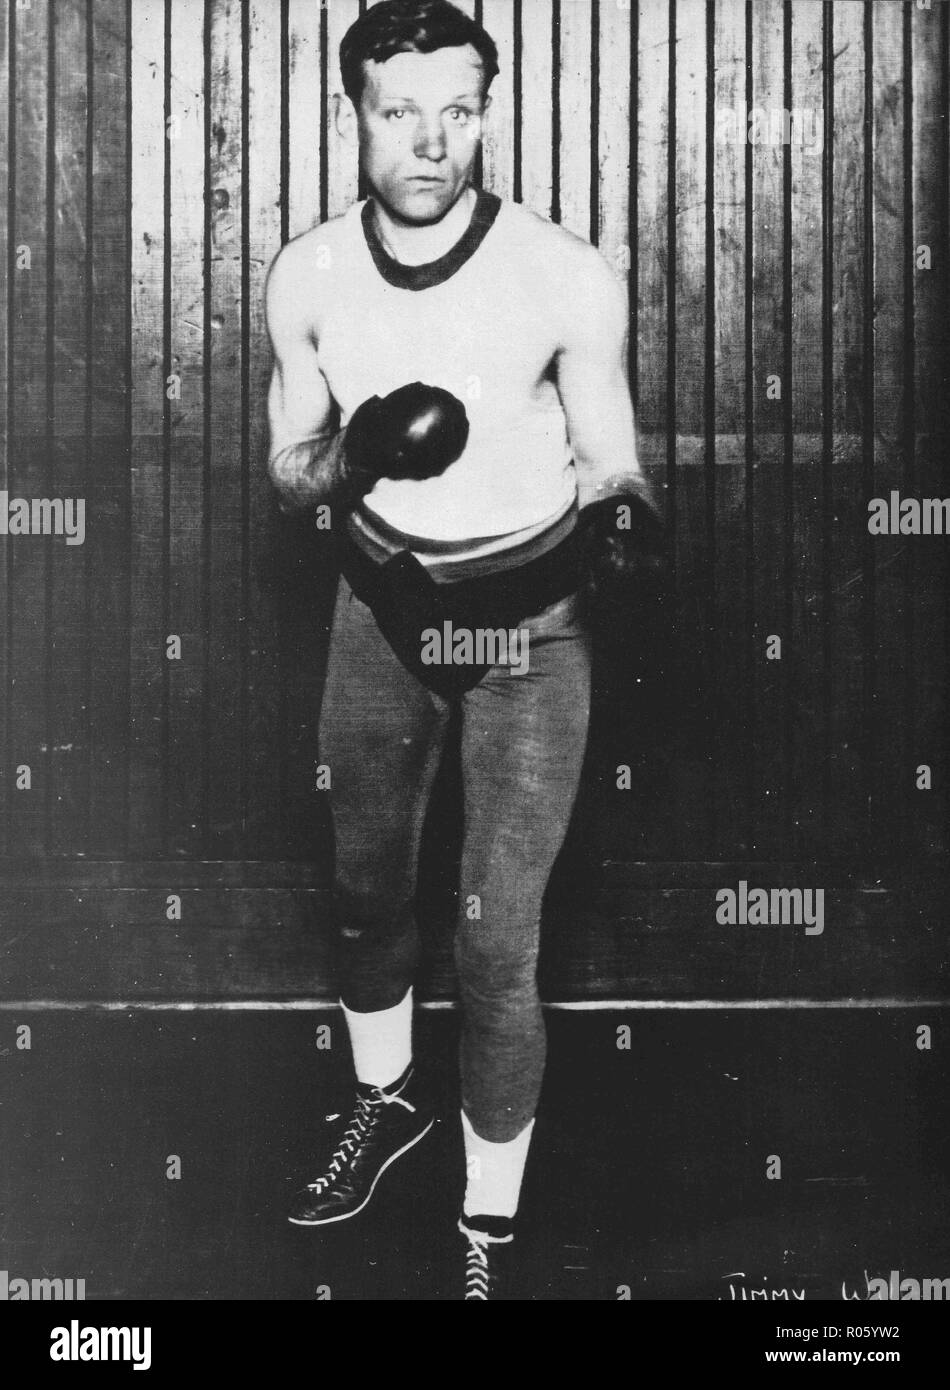 Photo of William James JImmy Wilde, Flyweight Champion of the World (1892-1969) born in Quaker's Yard, Wales, known as the 'Tylorstown Terror'. - Stock Image